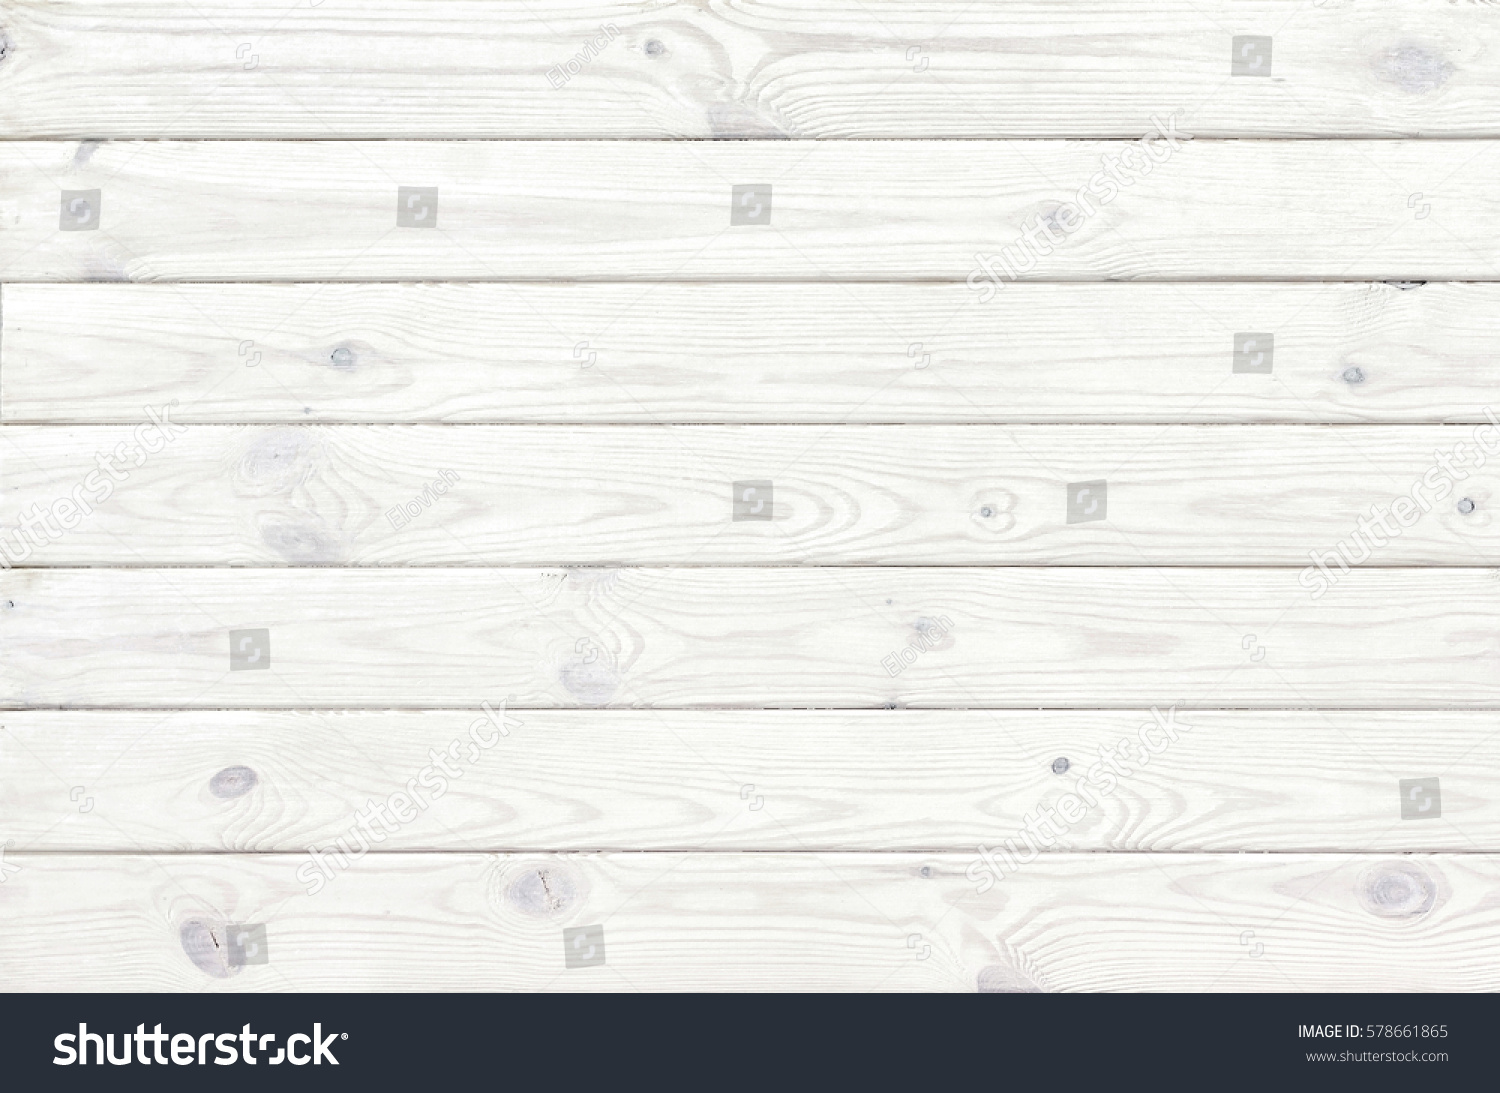 white wood table texture. white wood texture background, wooden table top view r